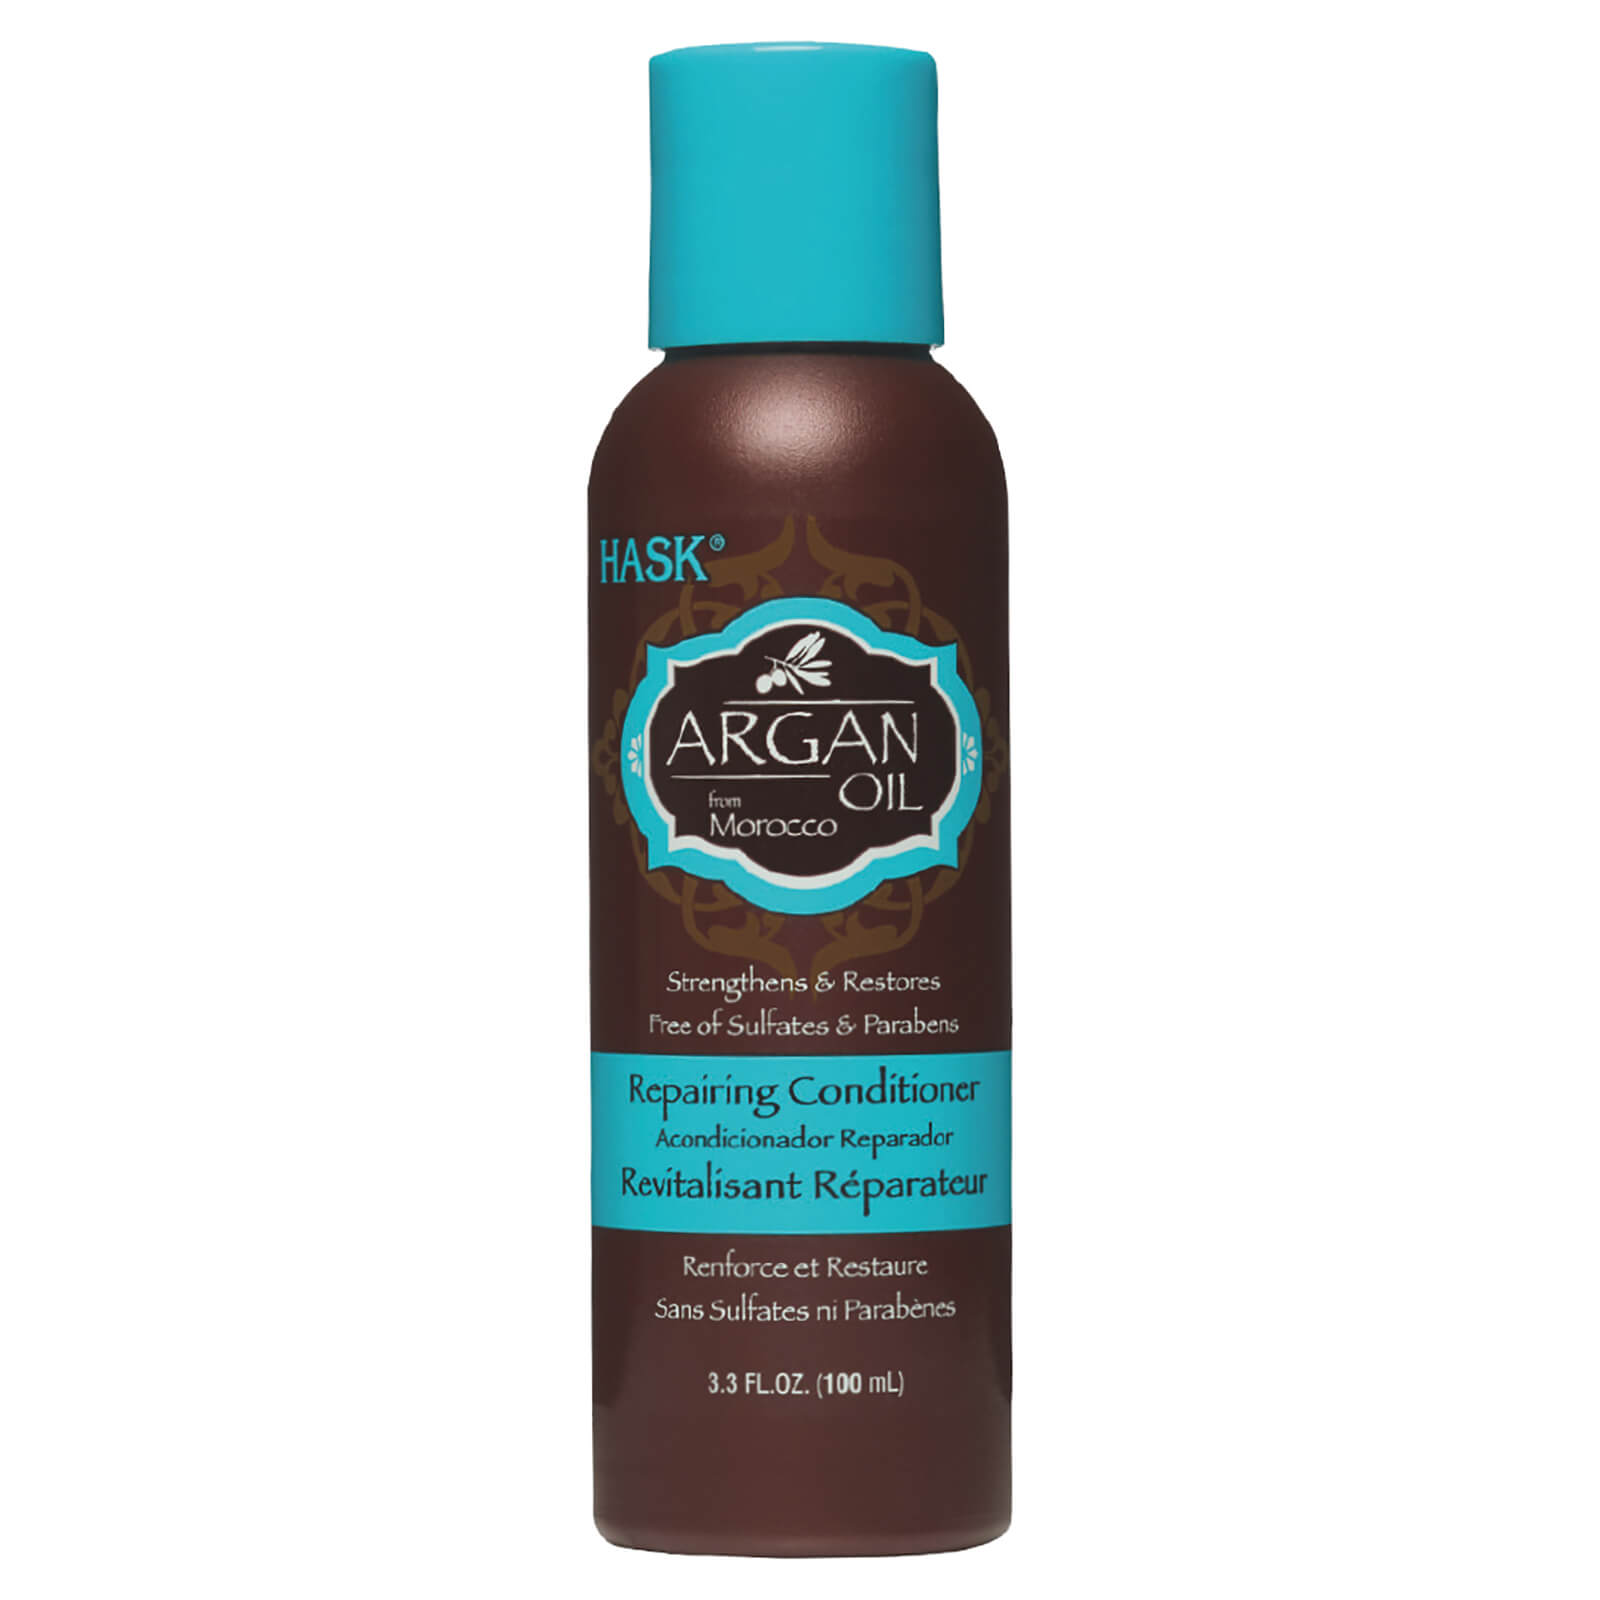 HASK® Argan Oil Repairing Conditioner